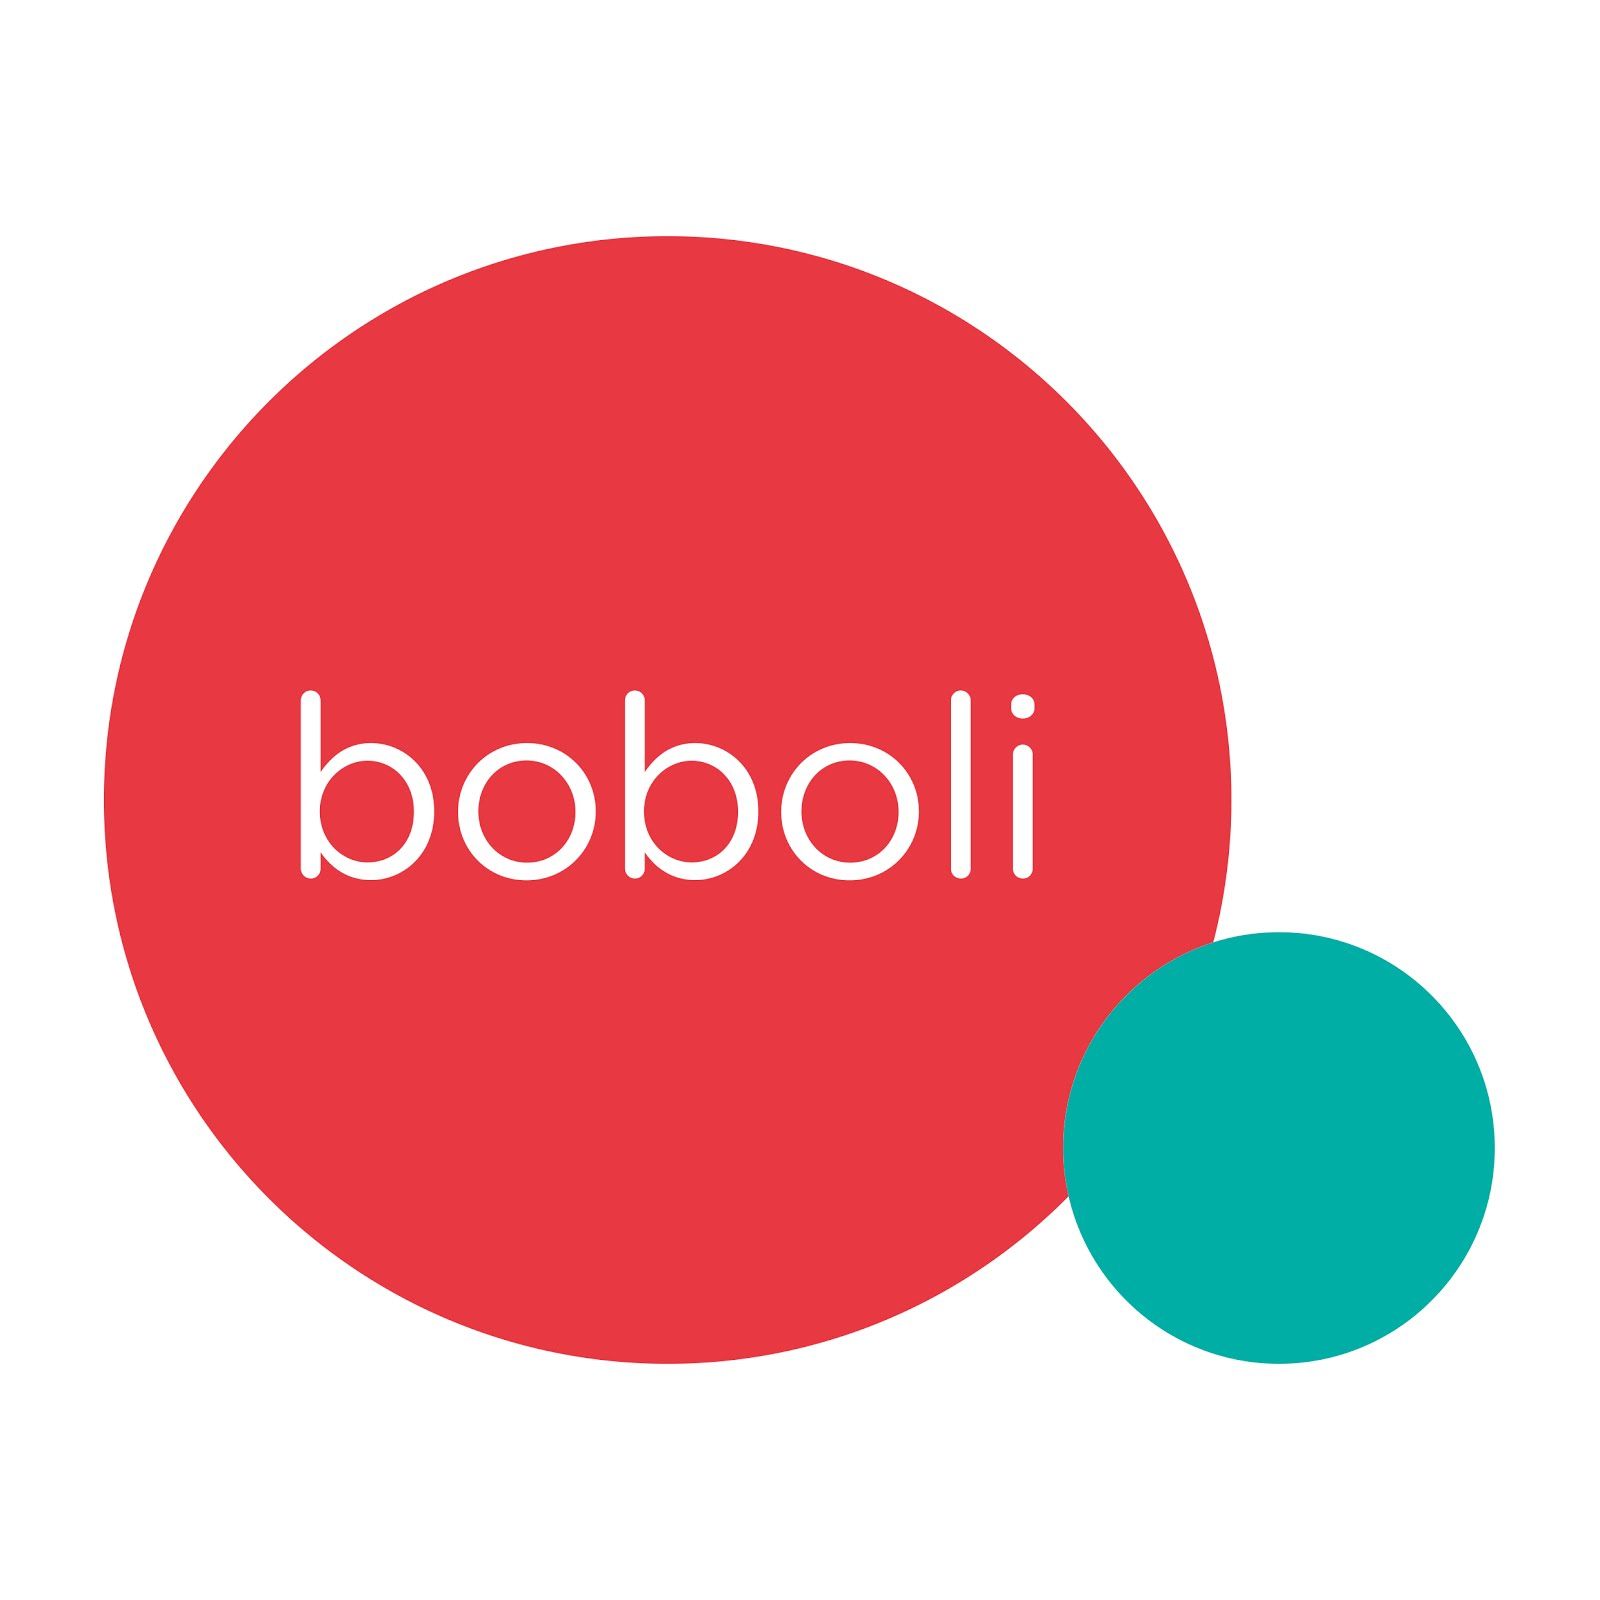 boboli logo fragancias fragrances niños magasalfa